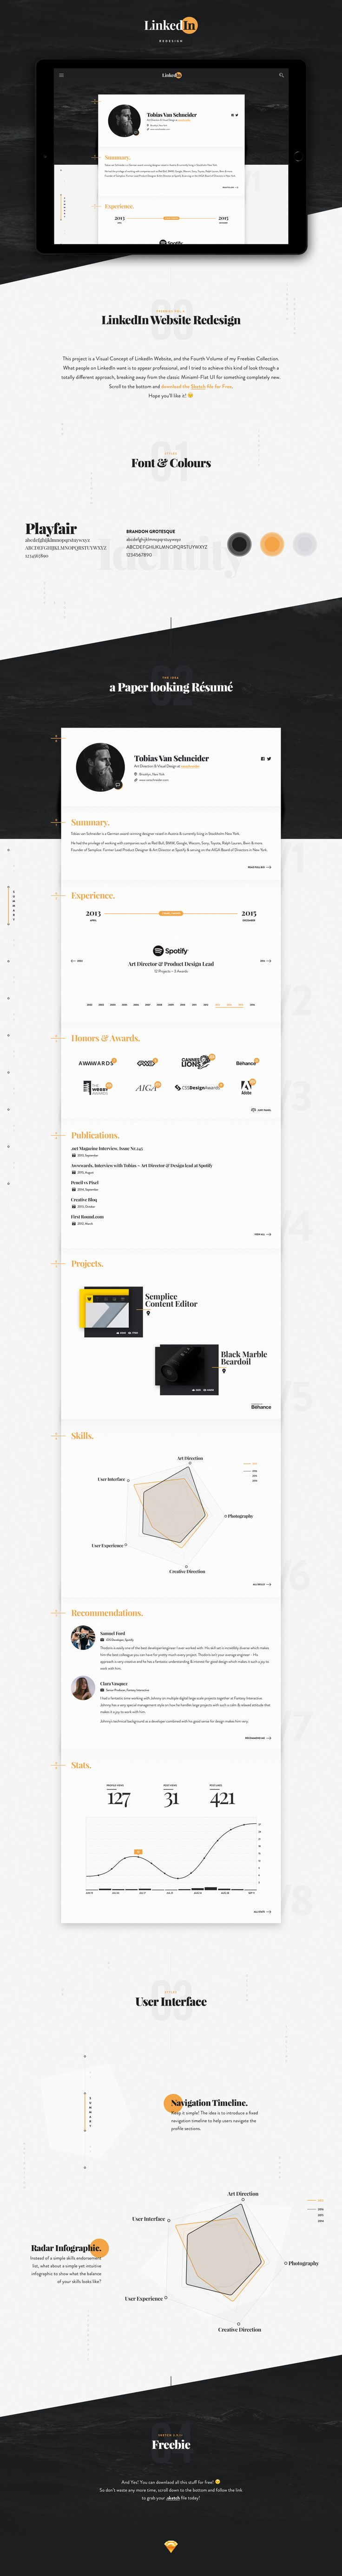 type + color | This project is a Visual Concept of LinkedIn Website, and the Fourth Volume of my Freebies Collection.What people on LinkedIn want is to appear professional, and I tried to achieve this kind of look through a totally different approach, breaking away fro…